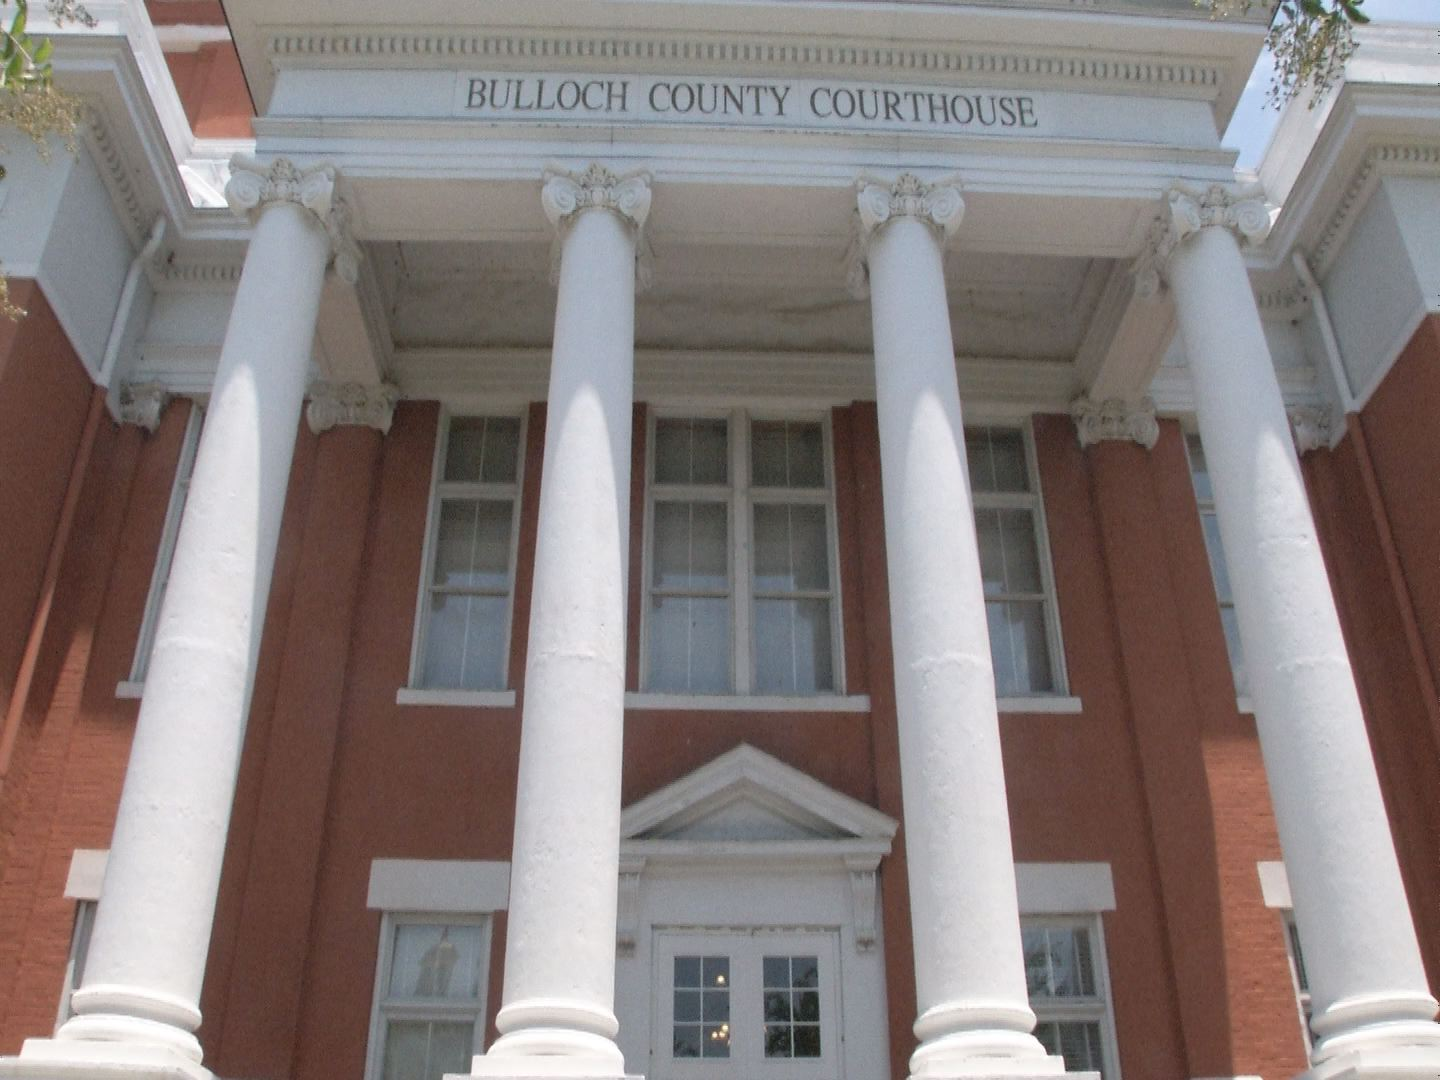 Bulloch County Courthouse_17334